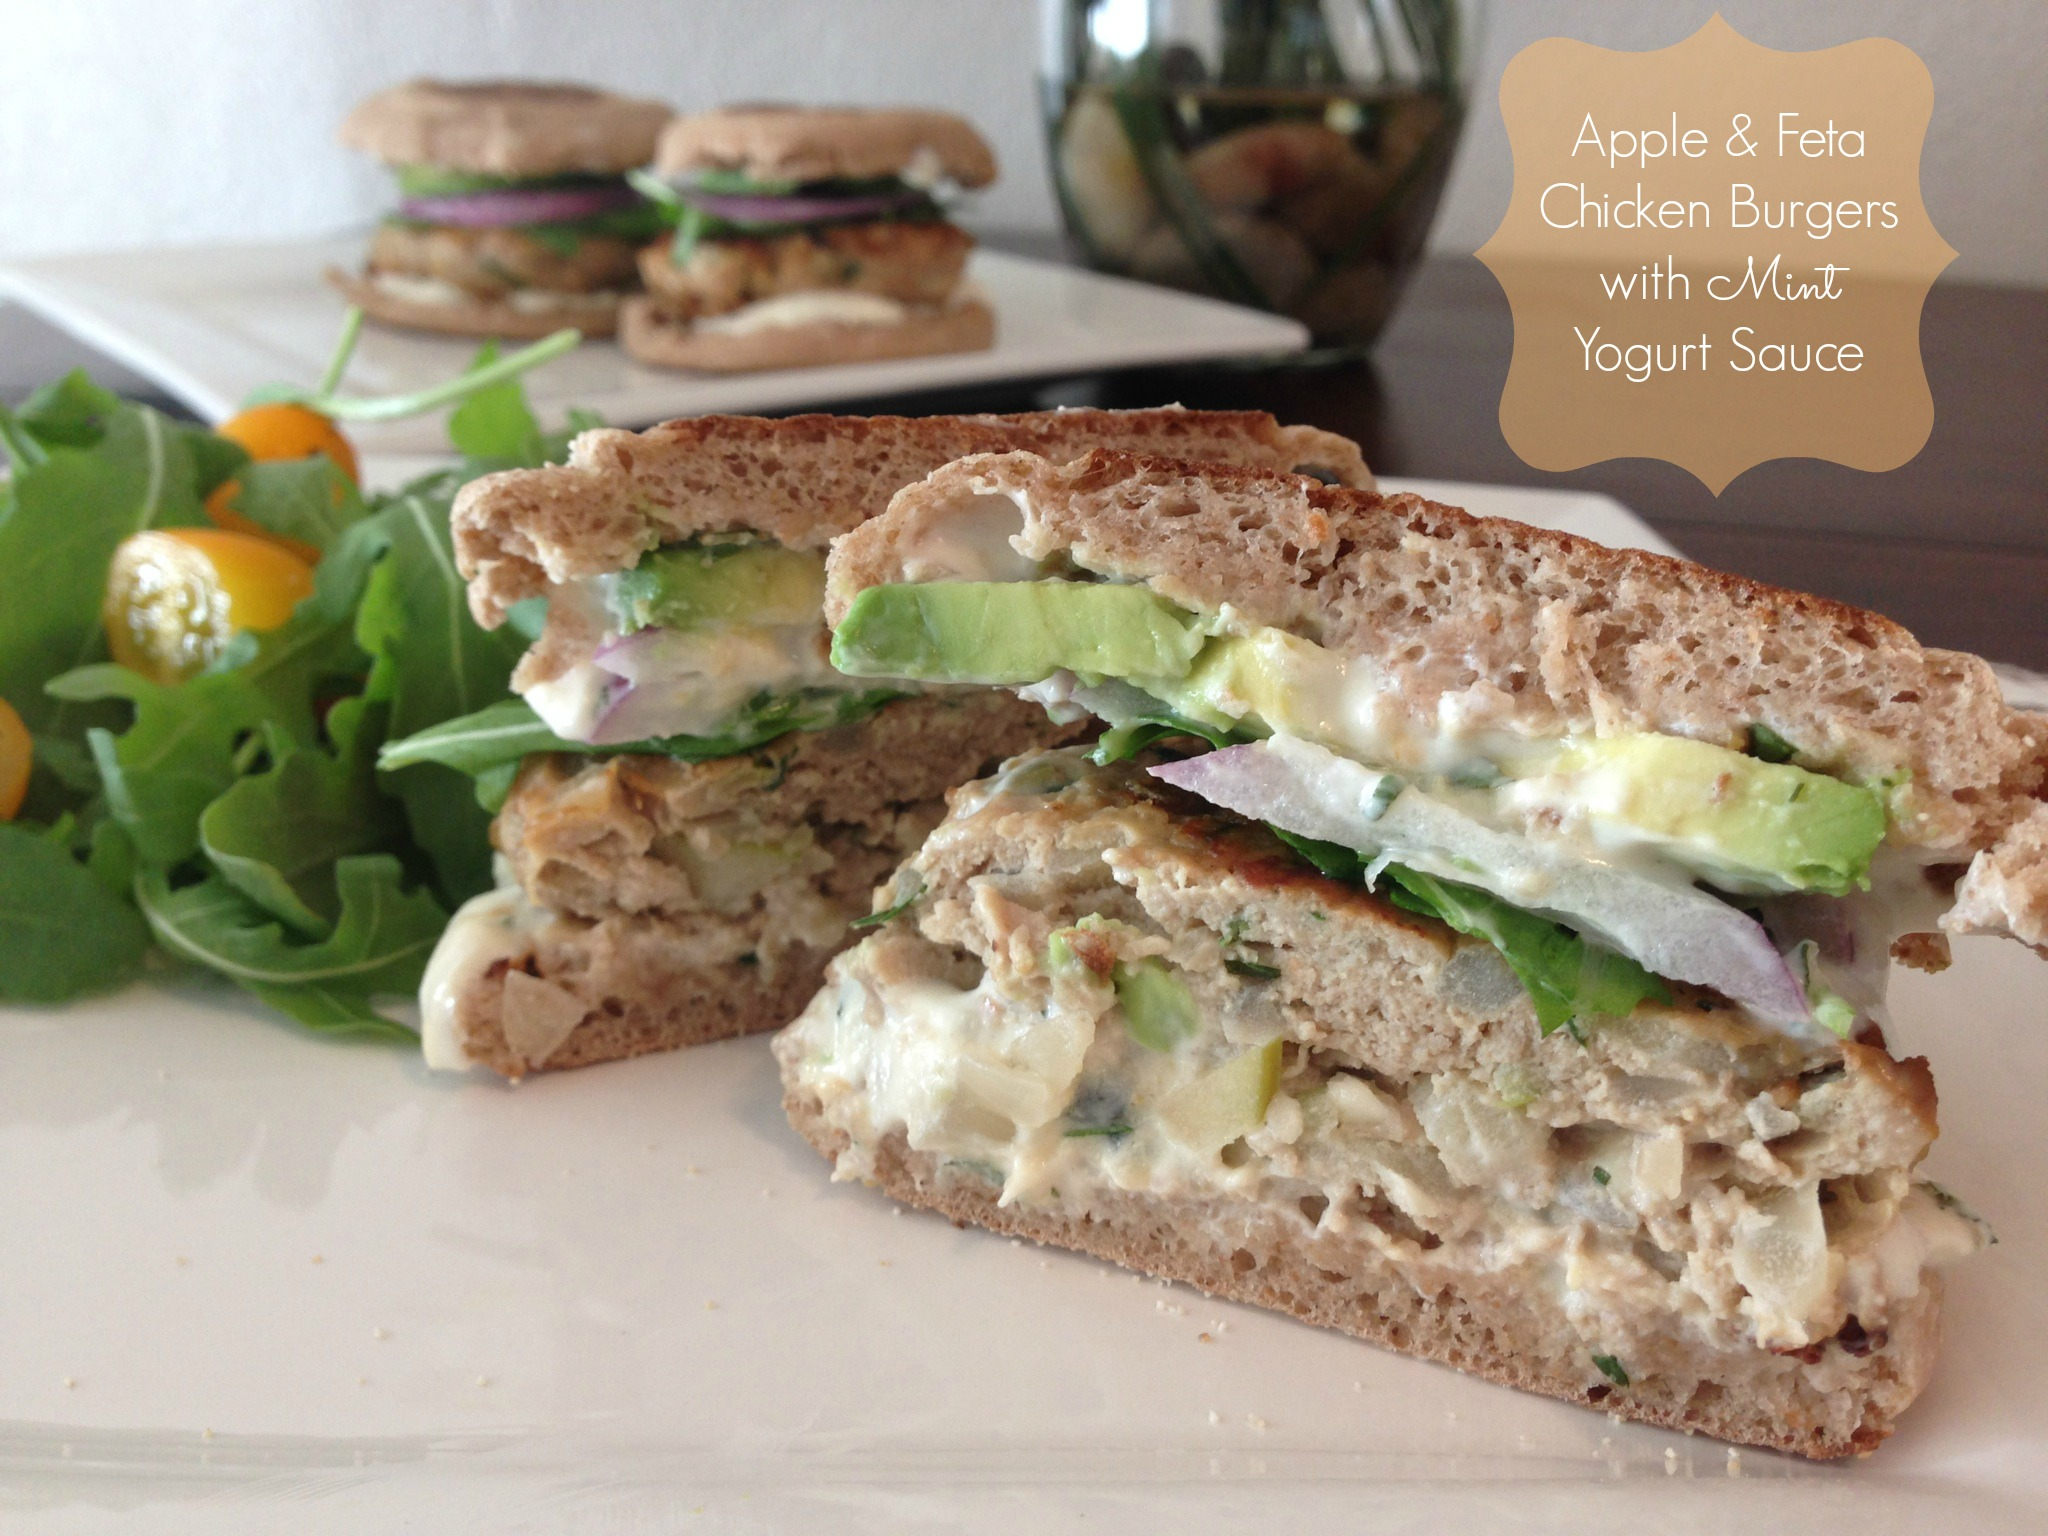 Apple & Feta Chicken Burgers with Mint Yogurt Sauce